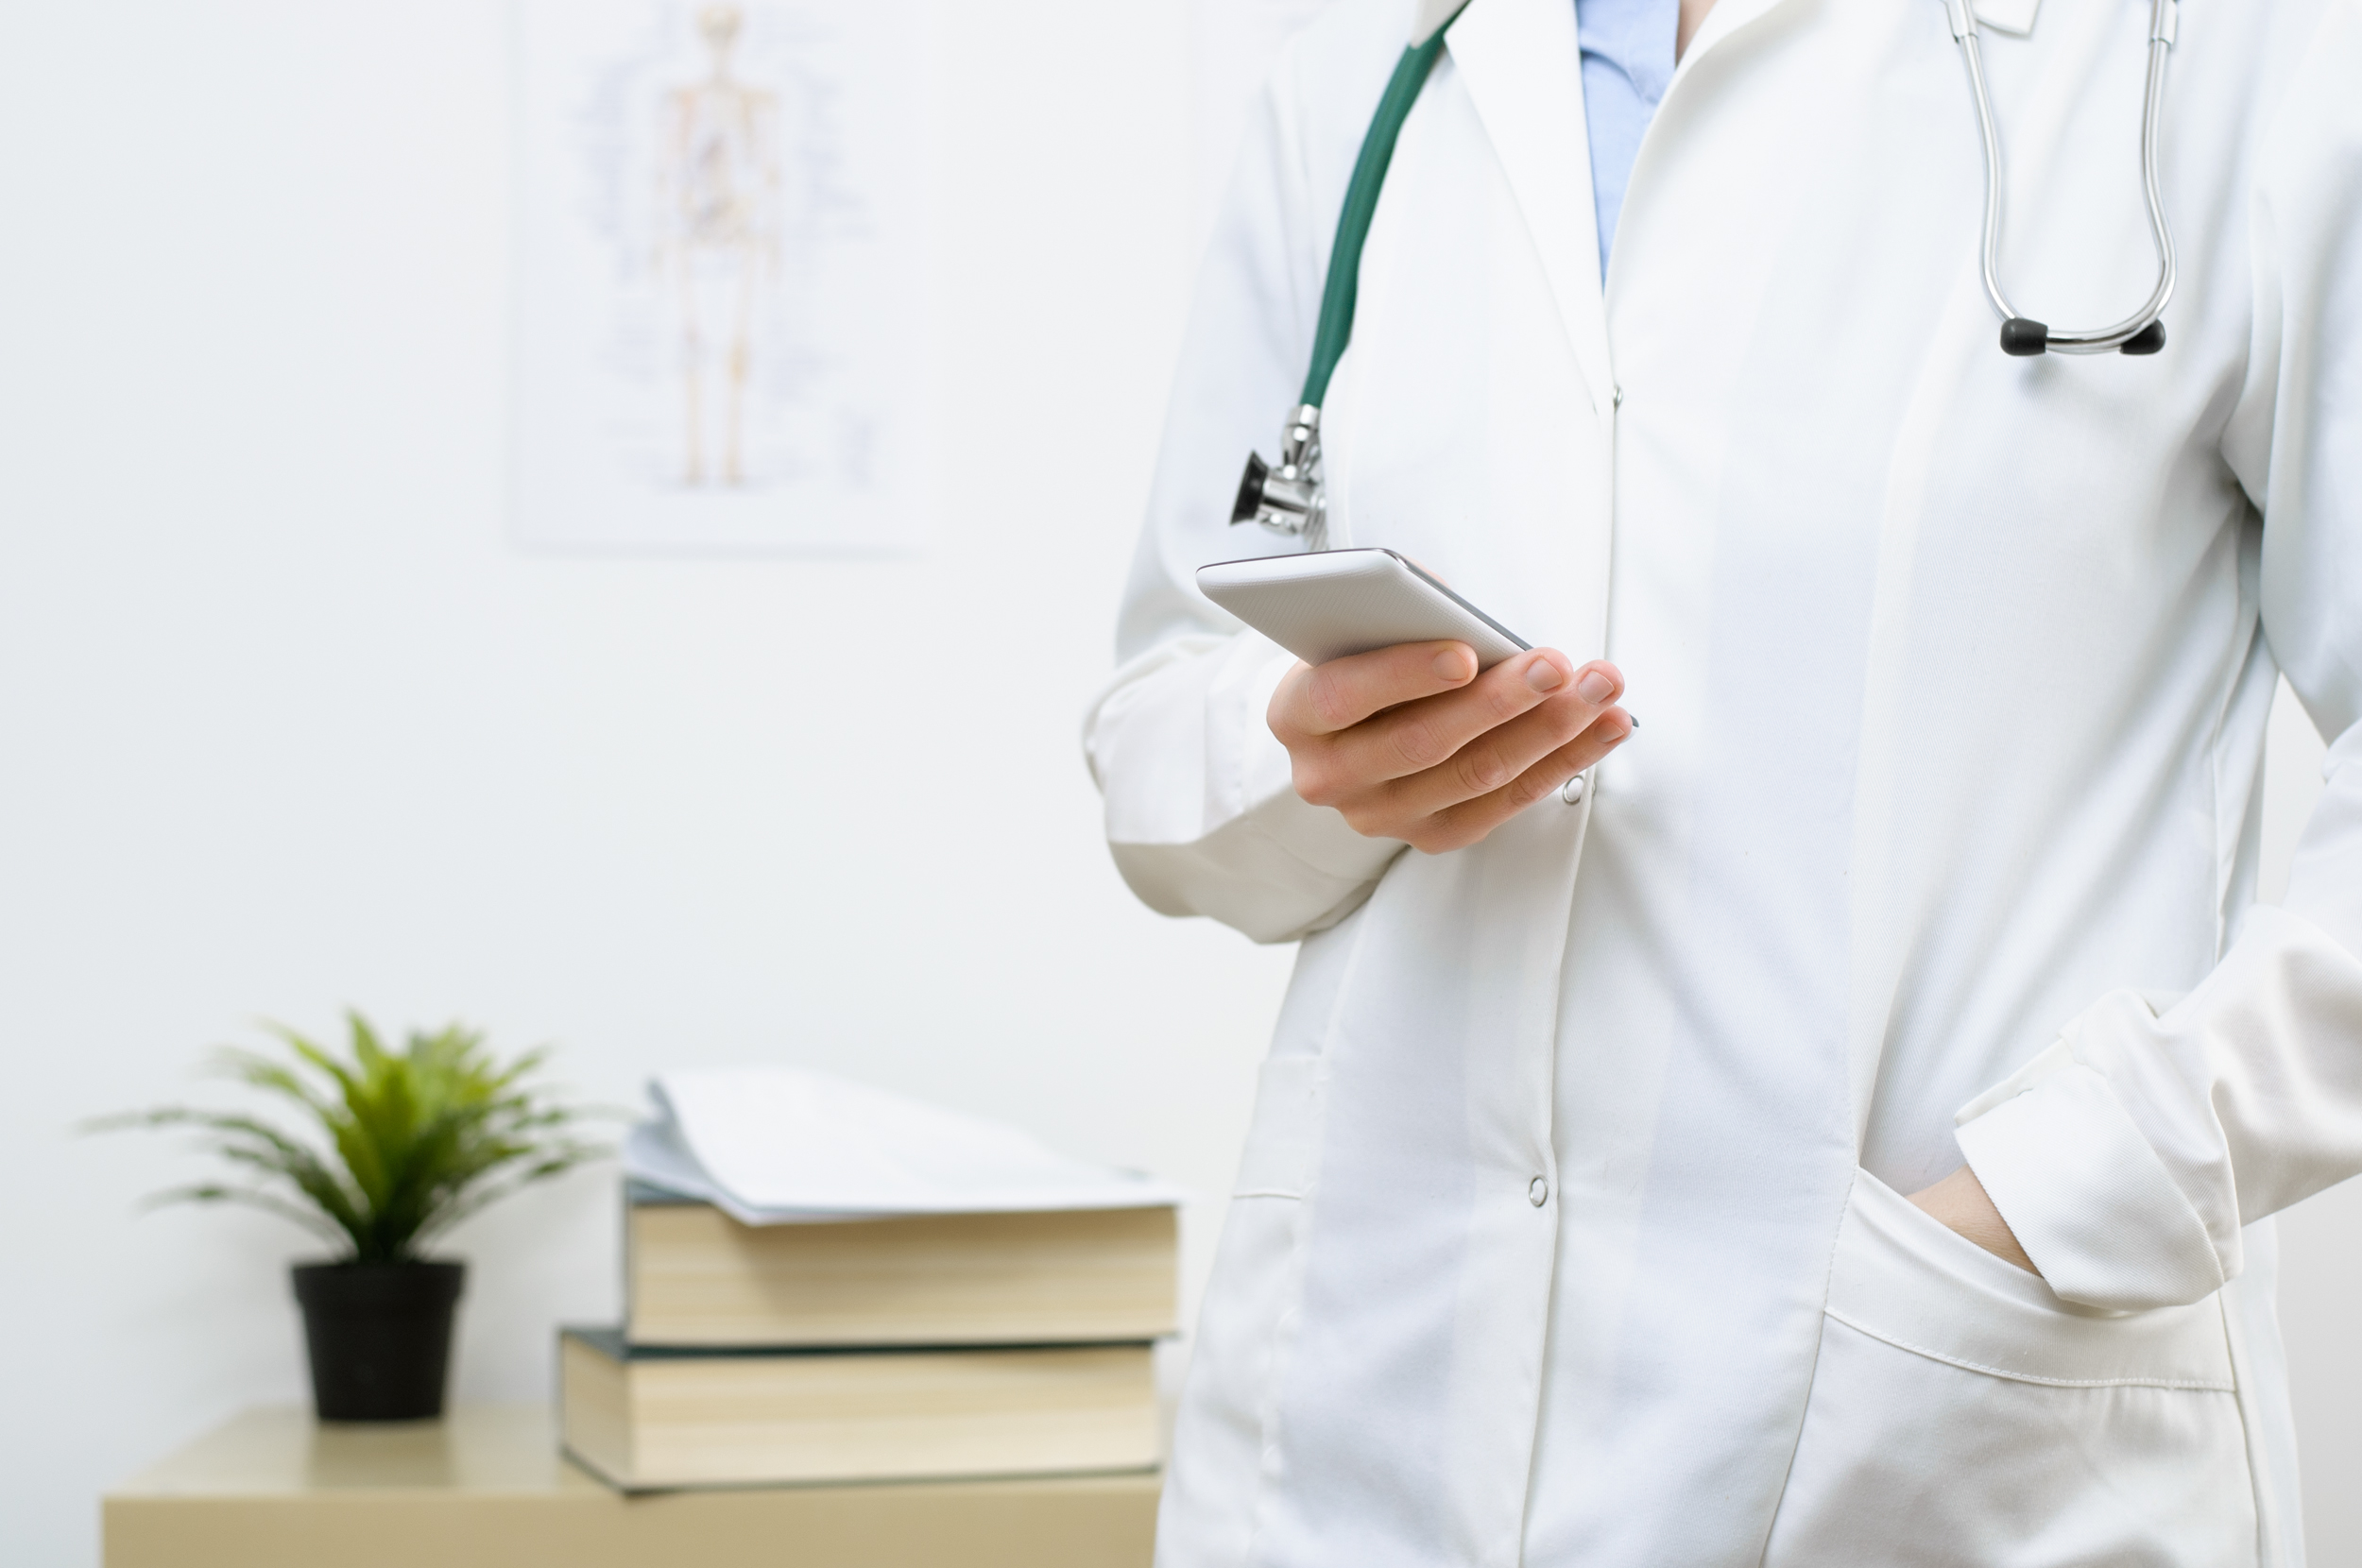 Sensitive Medical Mobile Software is Not Immune to High-Risk Malware